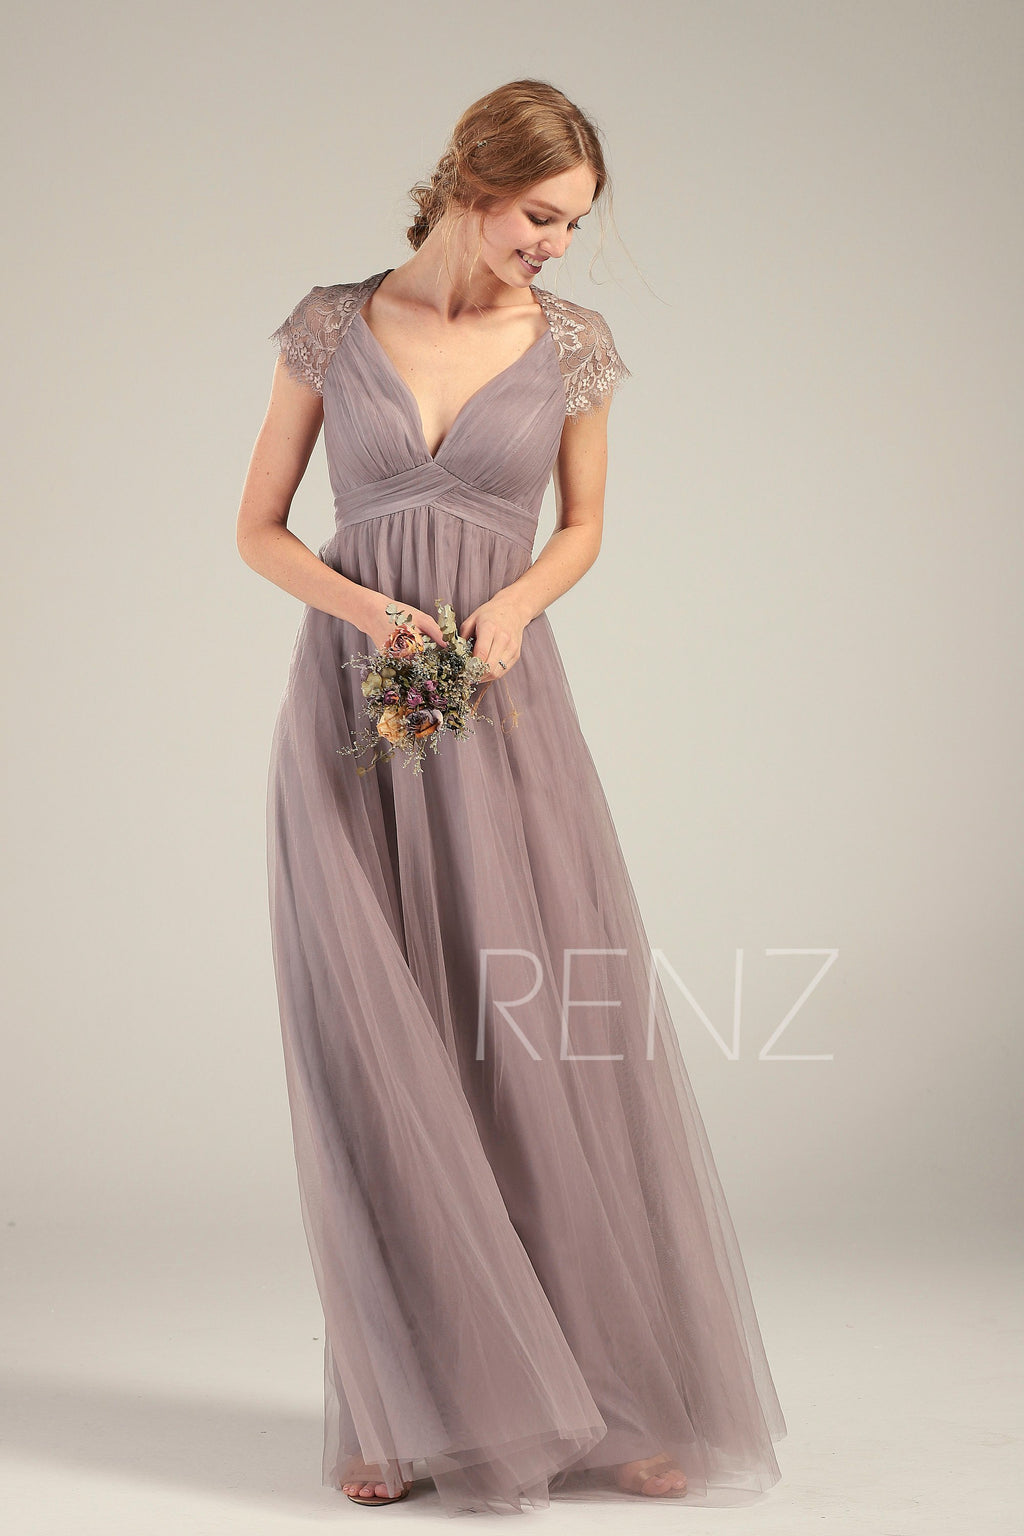 Prom Dress Dark Mauve Tulle Bridesmaid Dress Cap Sleeves Wedding Dress Ruched V Neck Maxi Dress Illusion Back Long A-line Party Dress(HS732)